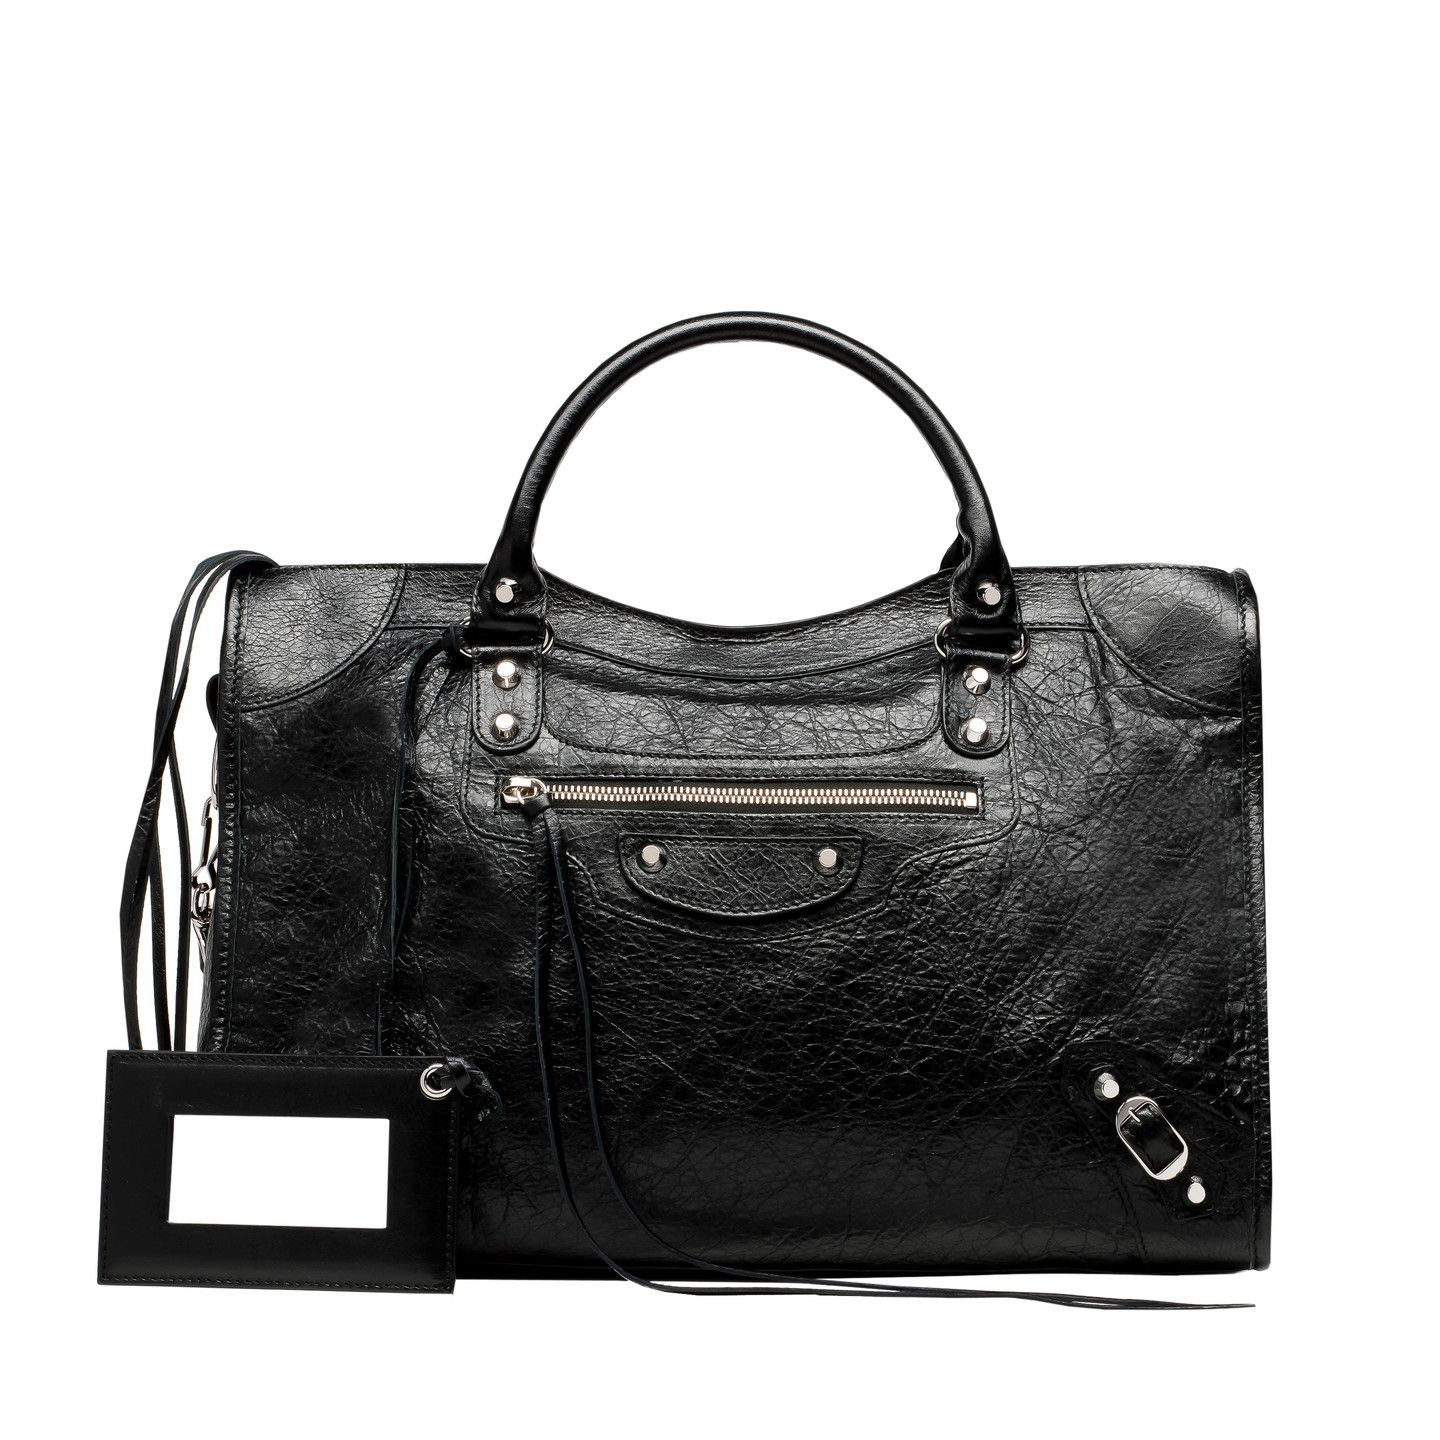 designer fashion official supplier closer at Pin on Accessories: bags